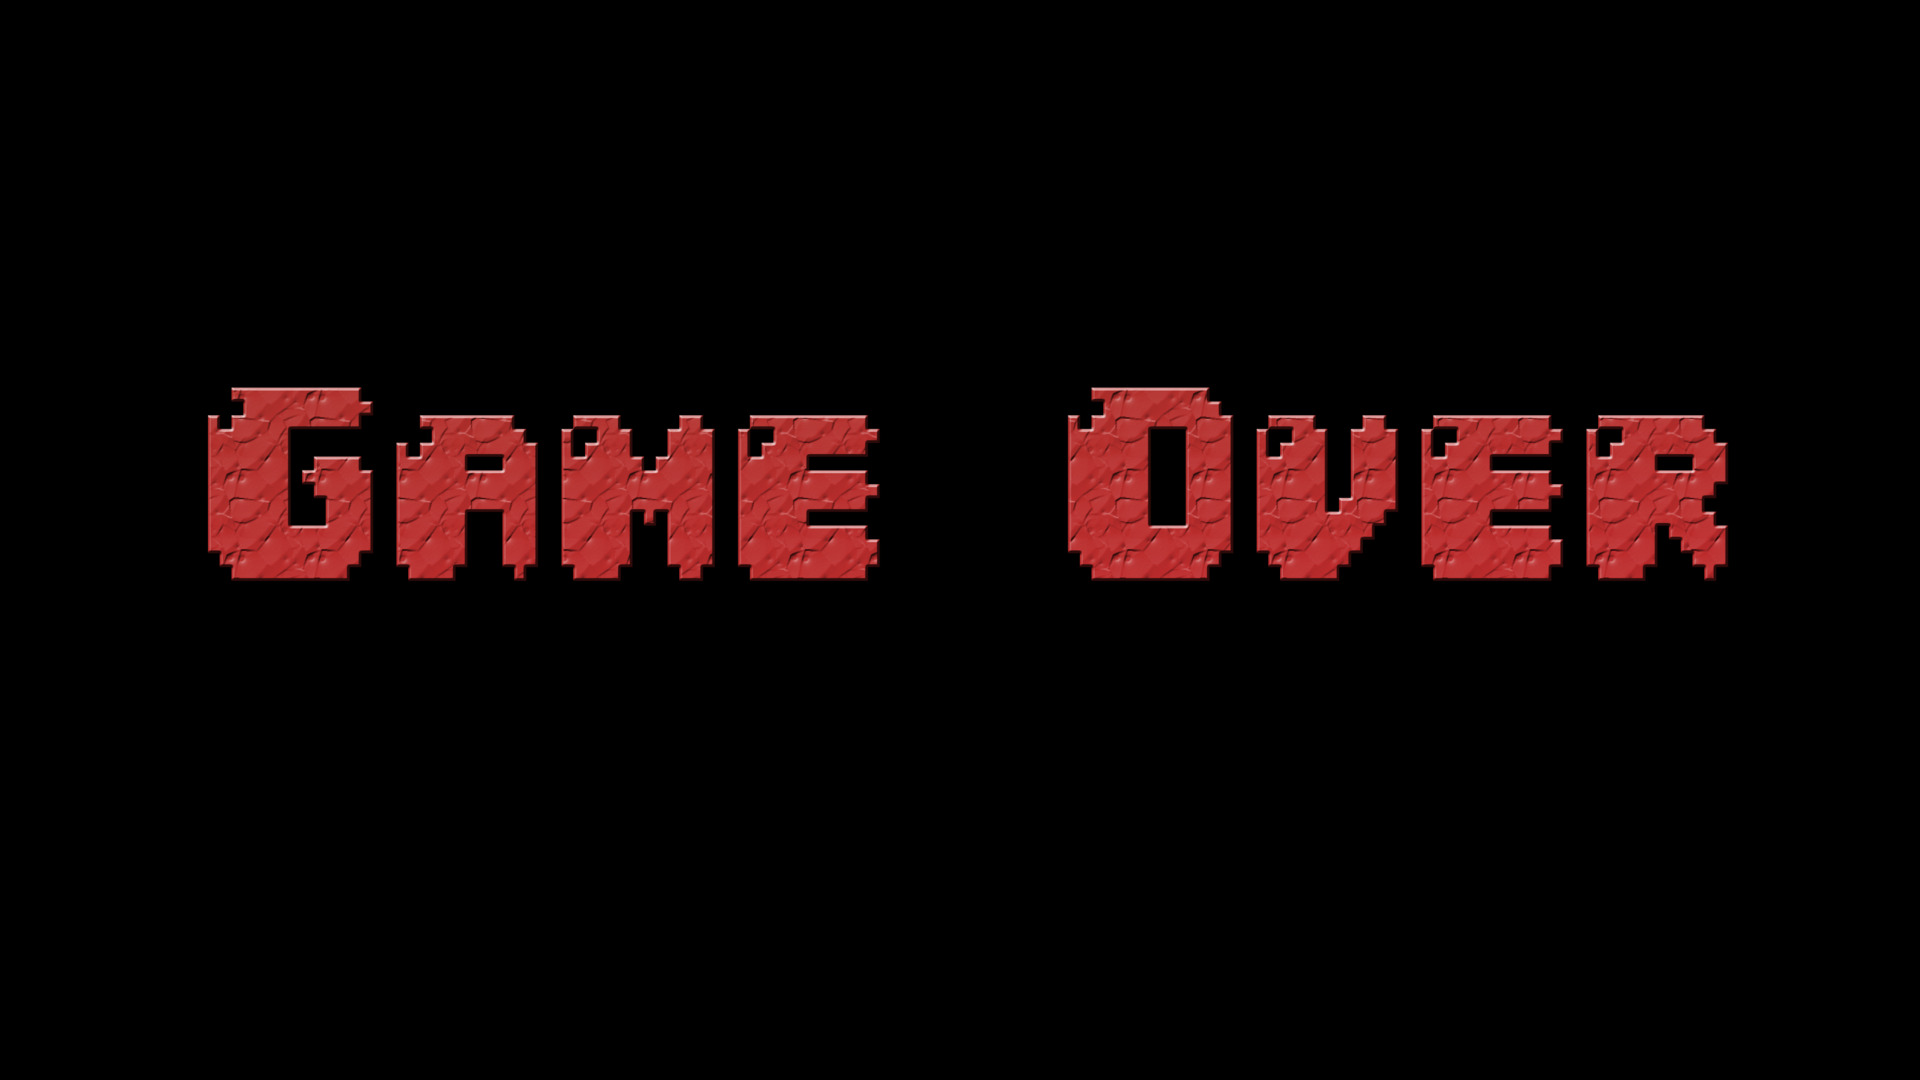 game-over-typography-pic.jpg